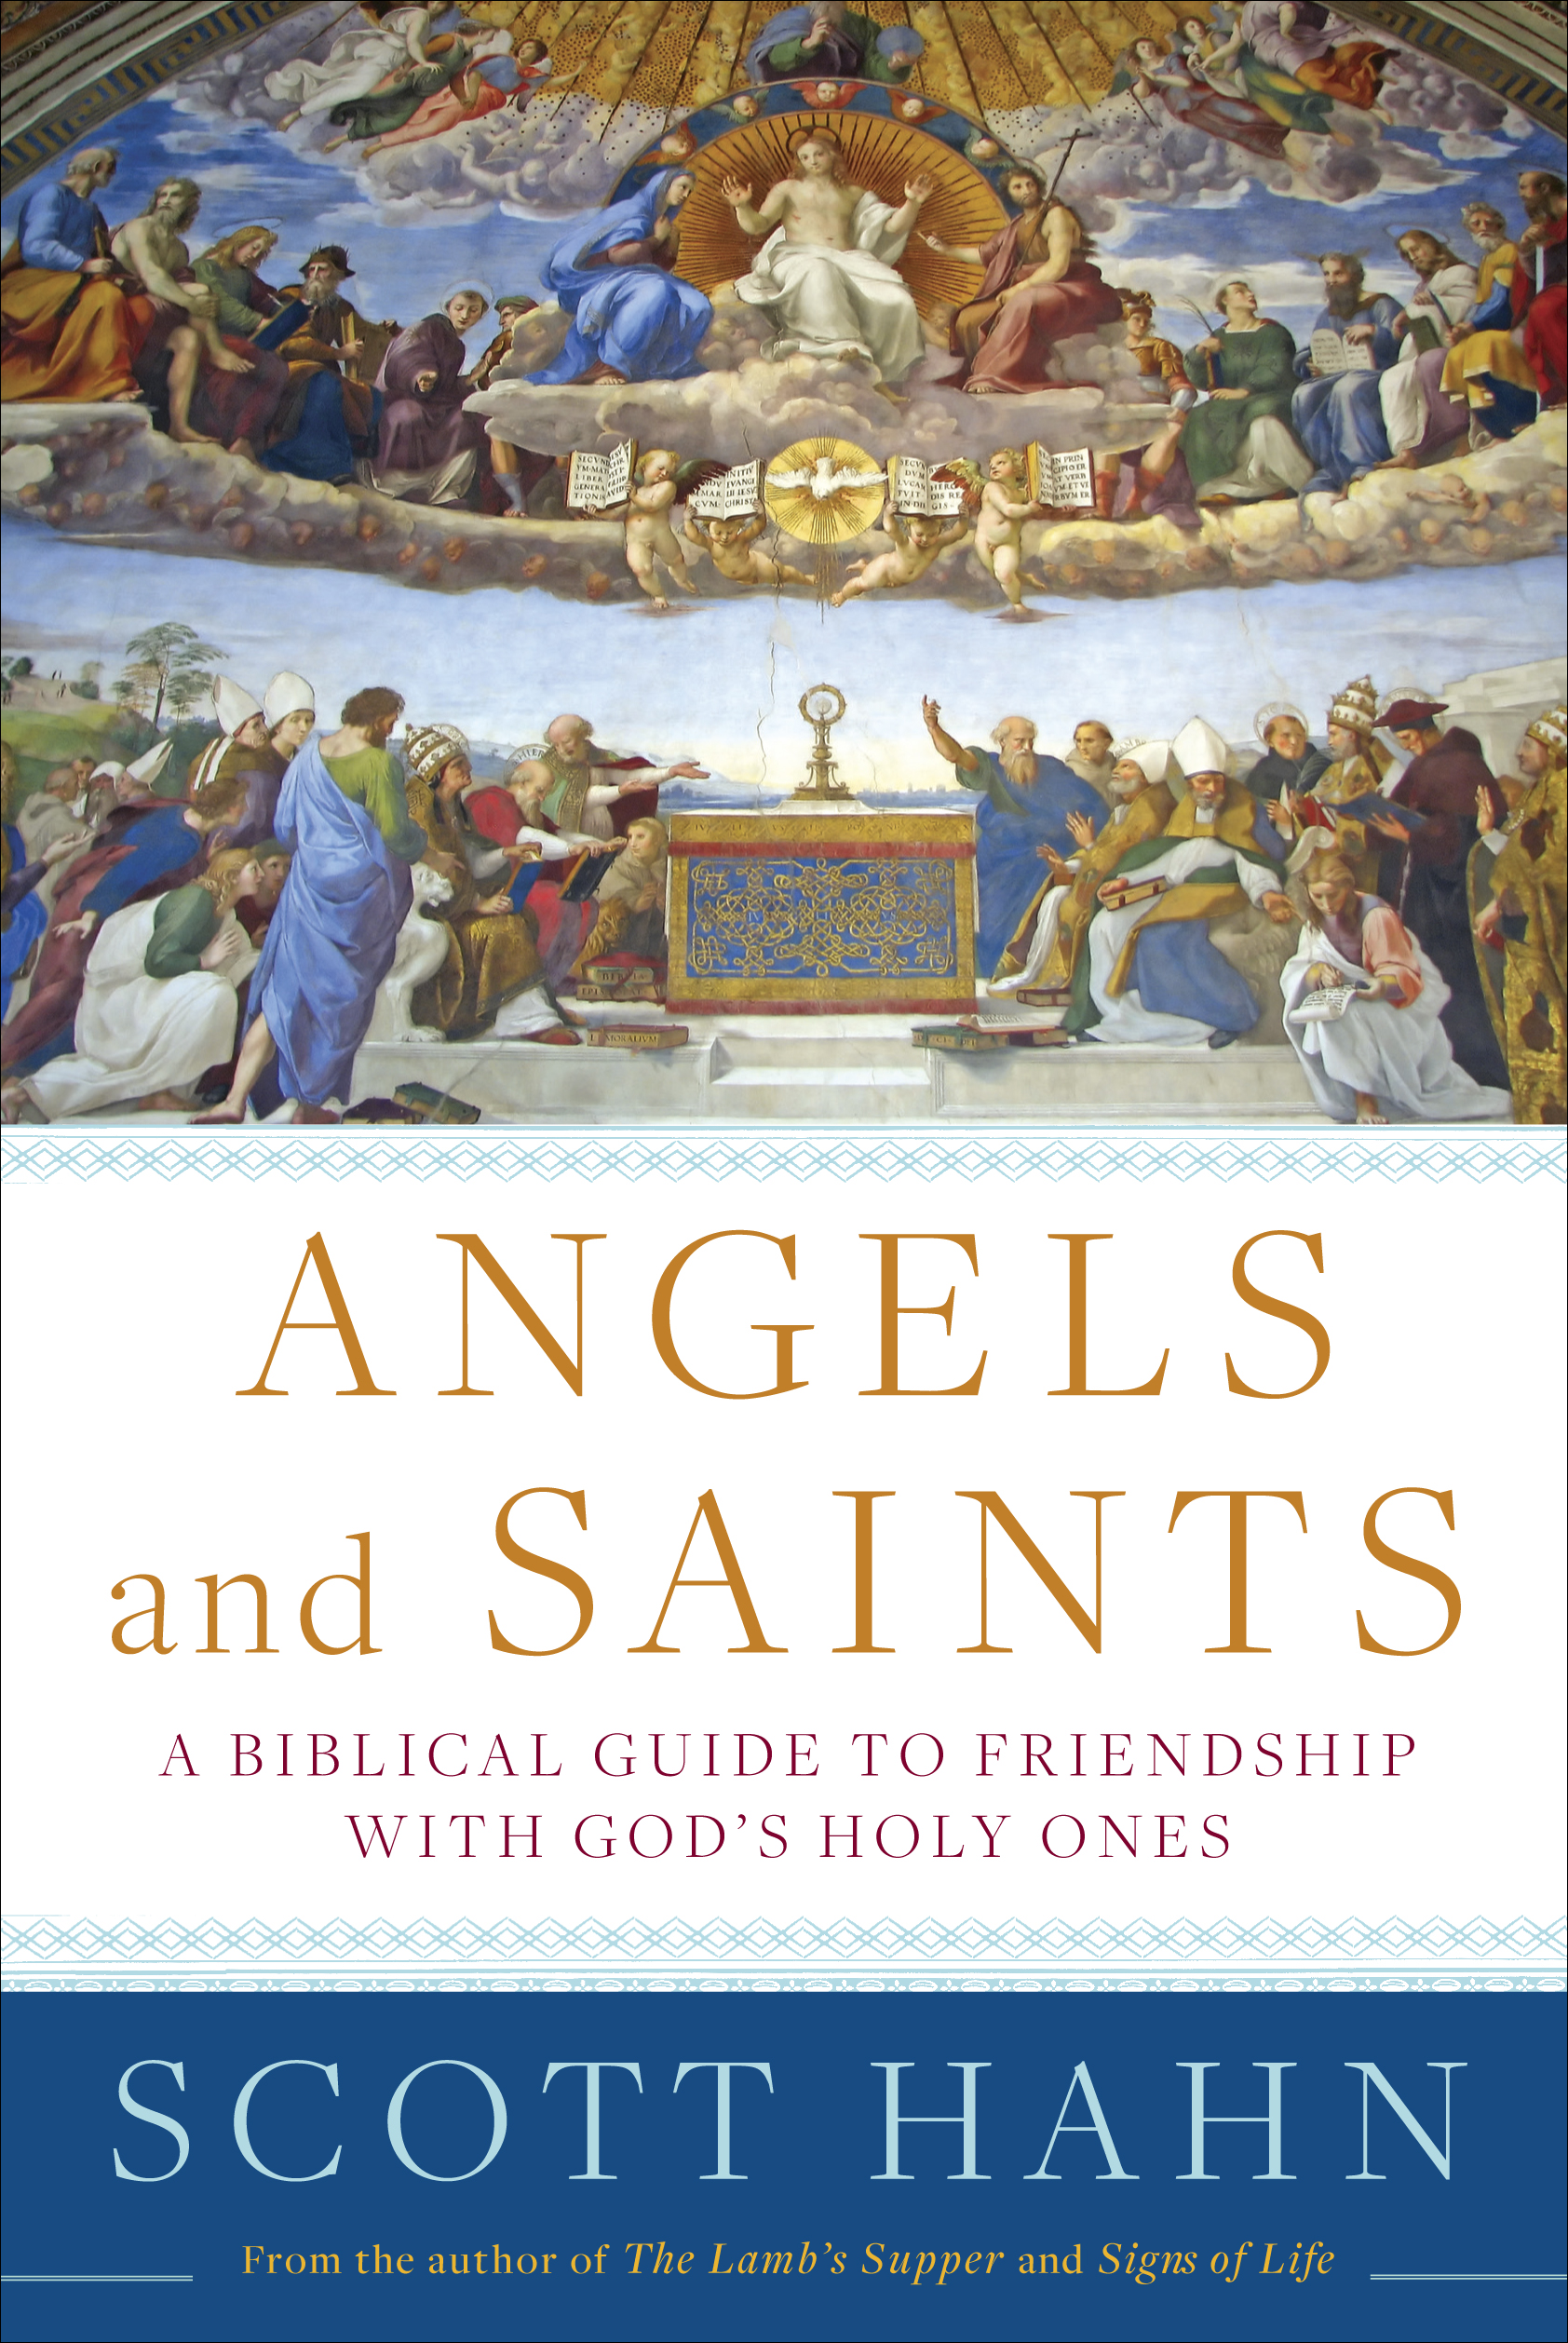 Book Review: Angels and Saints by Scott Hahn